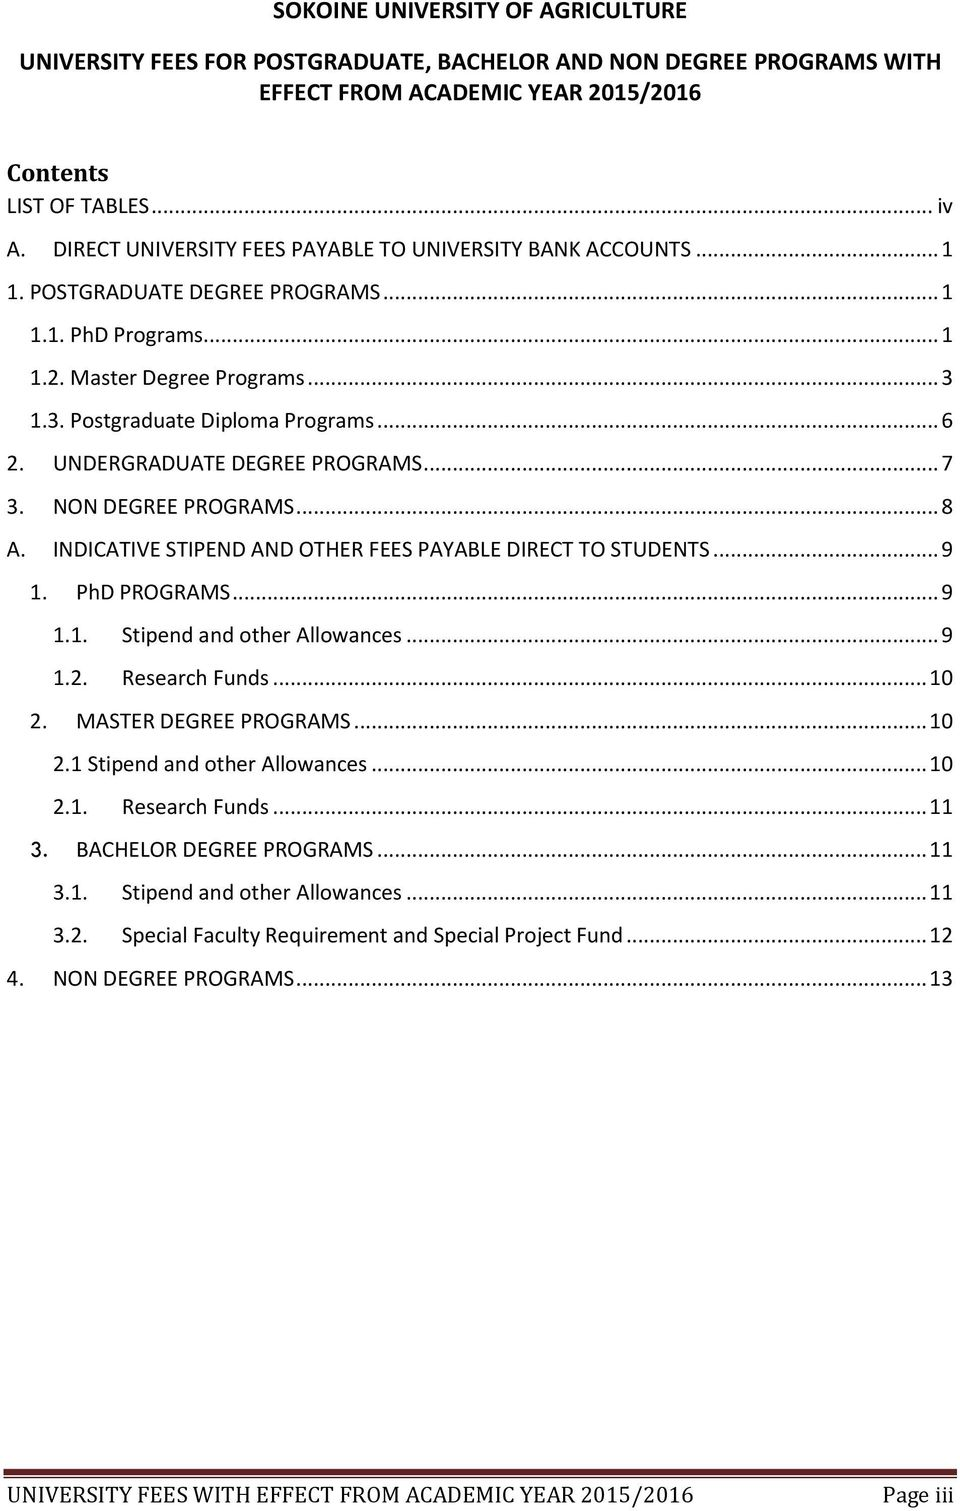 UNDERGRADUATE DEGREE PROGRAMS... 7 3. NON DEGREE PROGRAMS... 8 A. INDICATIVE STIPEND AND OTHER FEES PAYABLE DIRECT TO STUDENTS... 9. PhD PROGRAMS... 9.. Stipend other Allowances... 9.2.